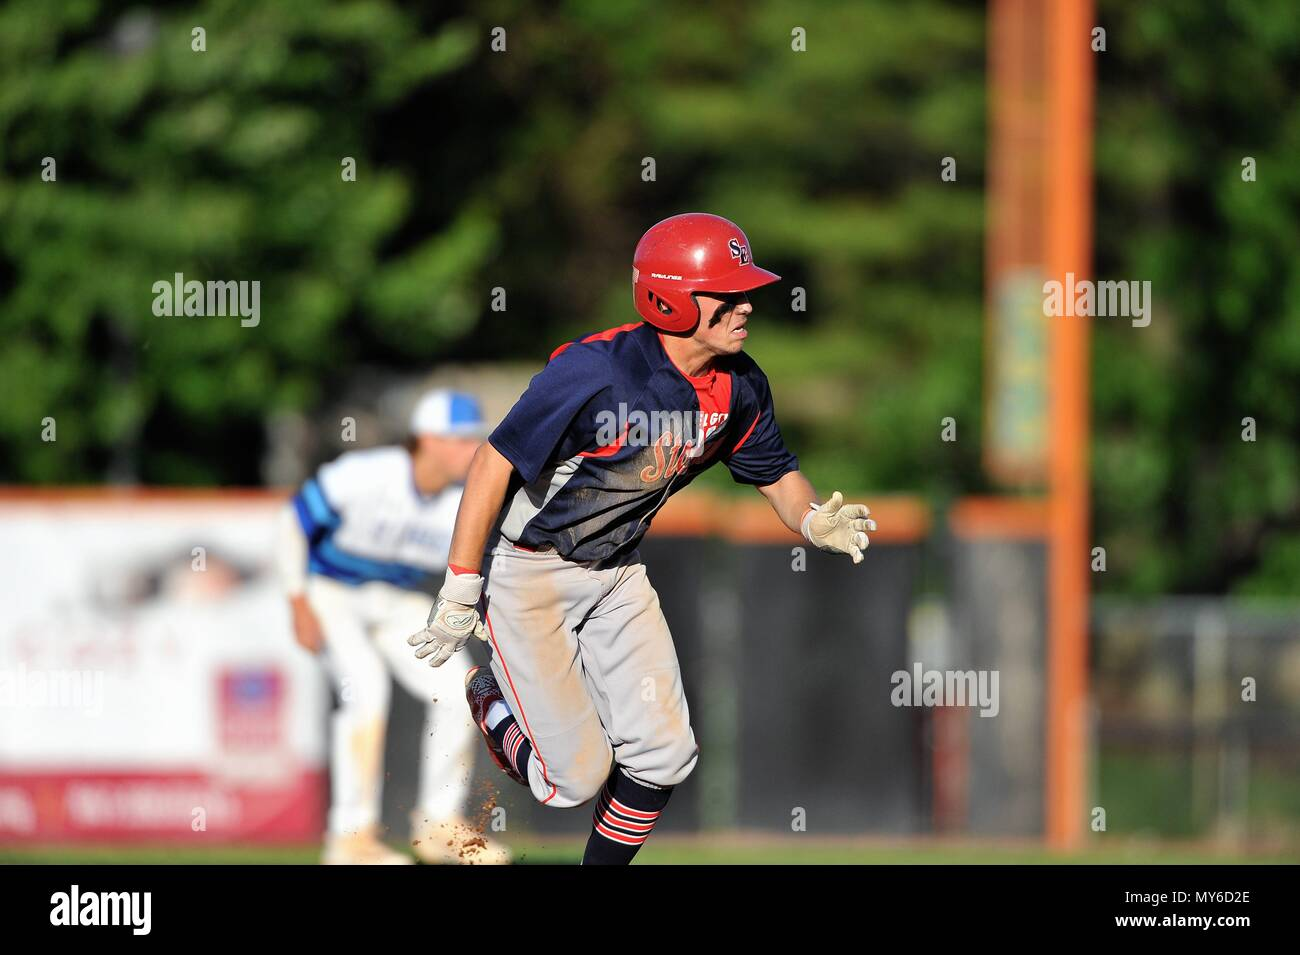 Runner taking a secondary lead prior to advancing from second to third base. USA. - Stock Image